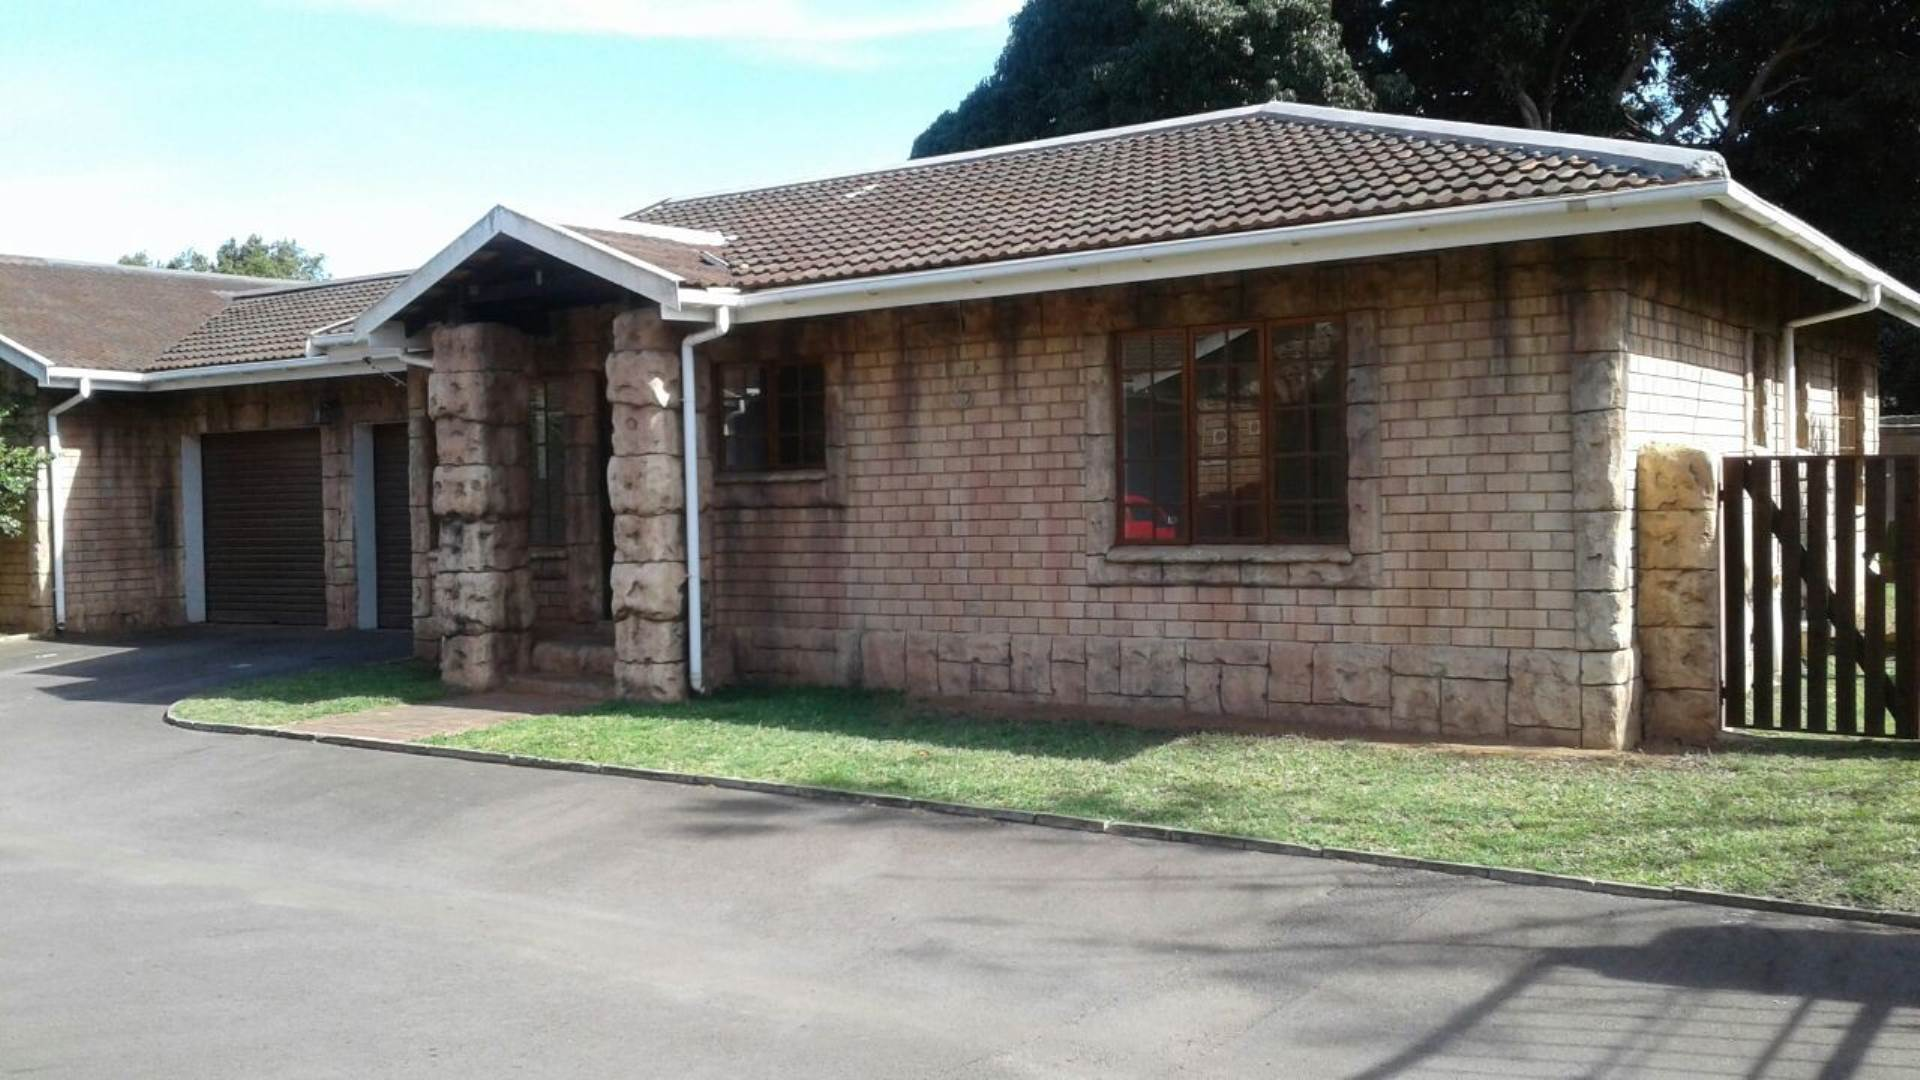 3 BedroomHouse For Sale In Kwambonambi